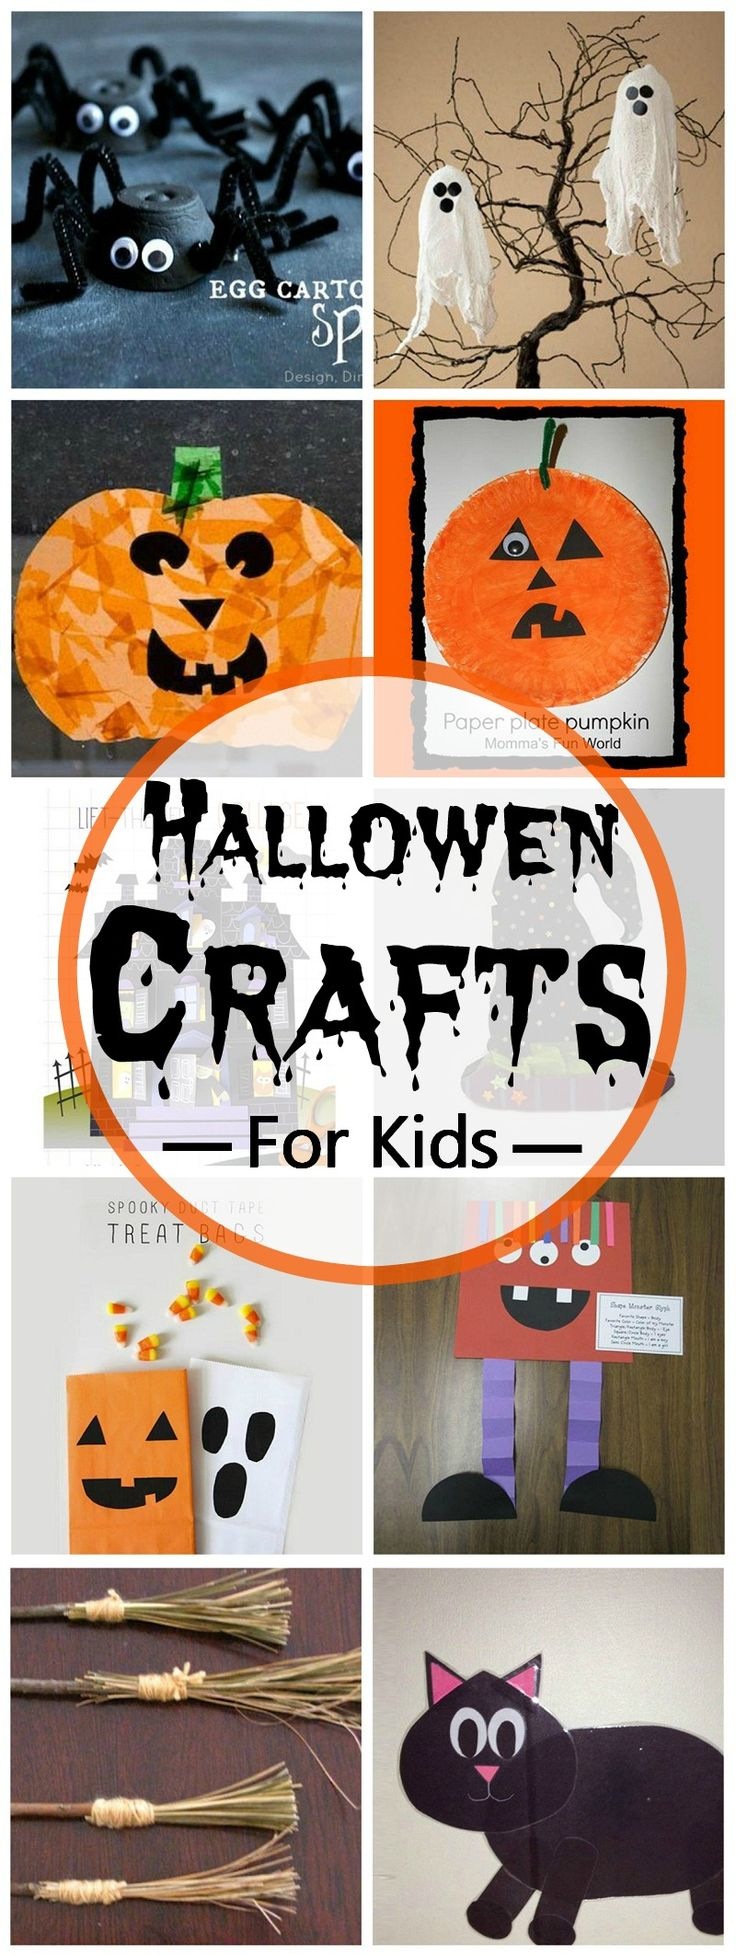 Halloween Crafts For Your Kids: Here are some fun Halloween craft ideas that your child can make at home under your guidance. Make sure you invest equal participation and spirit while creating these Halloween delights.